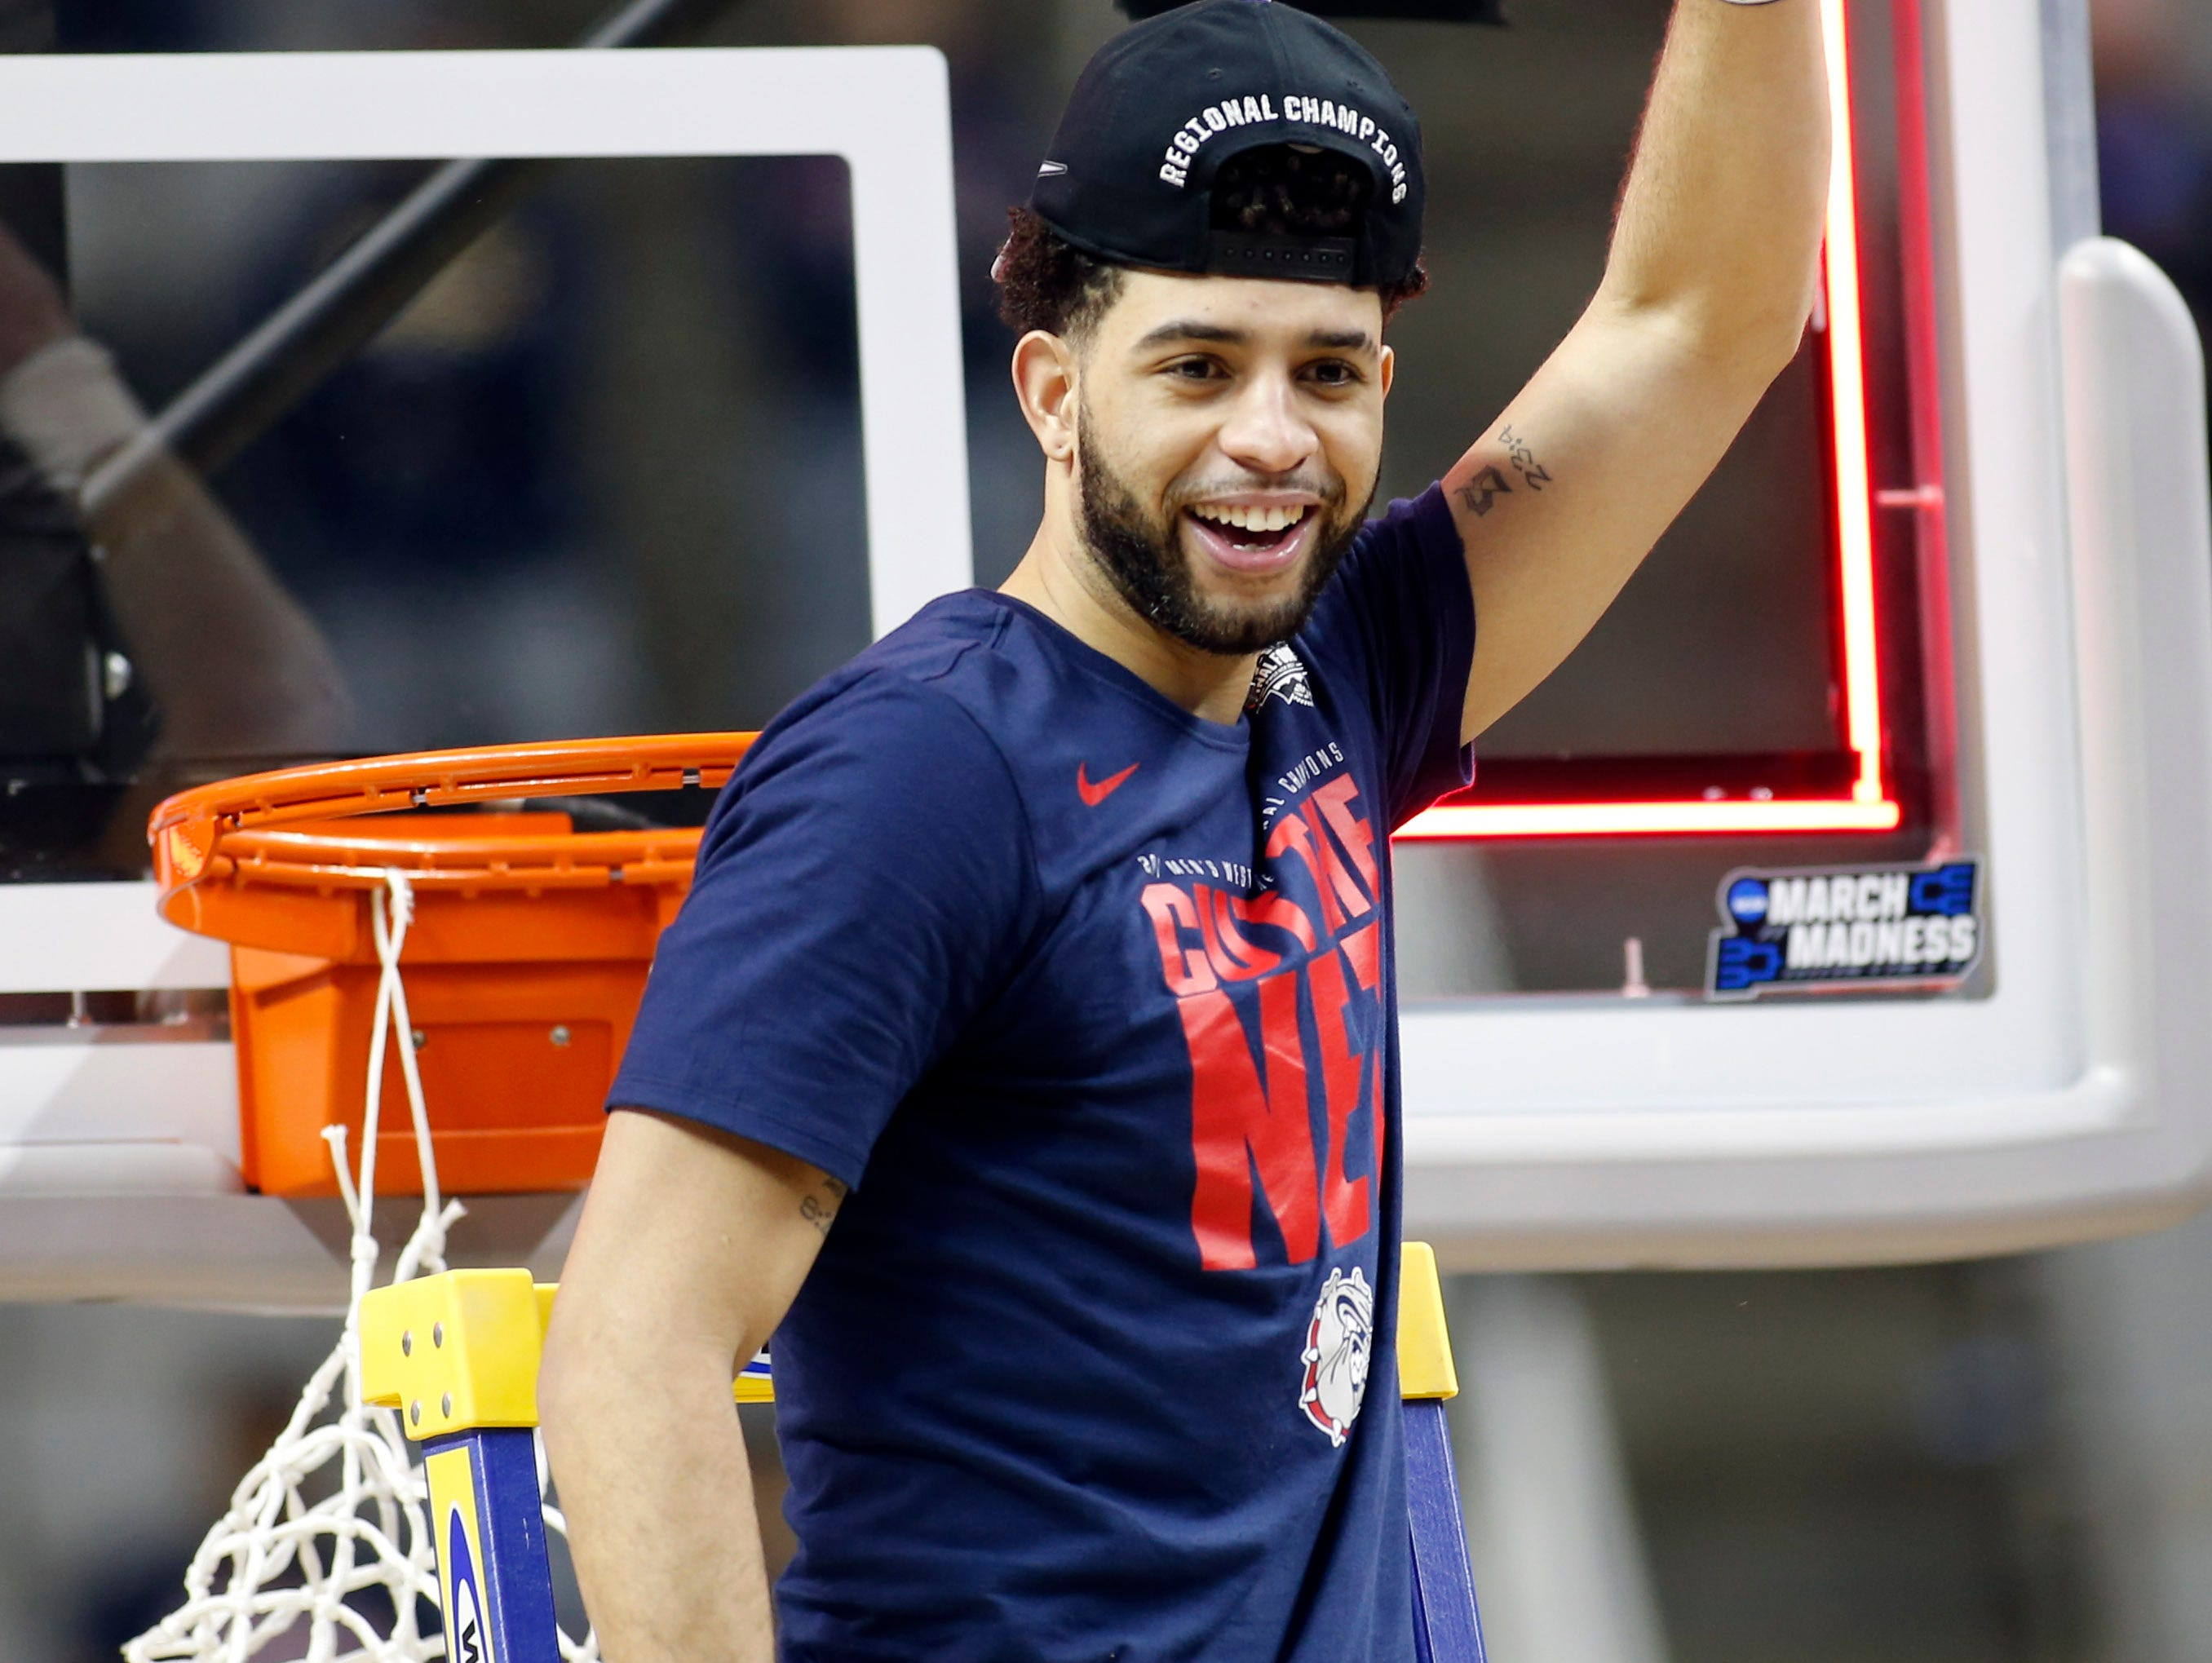 Gonzaga Bulldogs guard Josh Perkins cuts down the net after defeating the Xavier Musketeers in the finals of the West Regional of the 2017 NCAA Tournament at SAP Center.